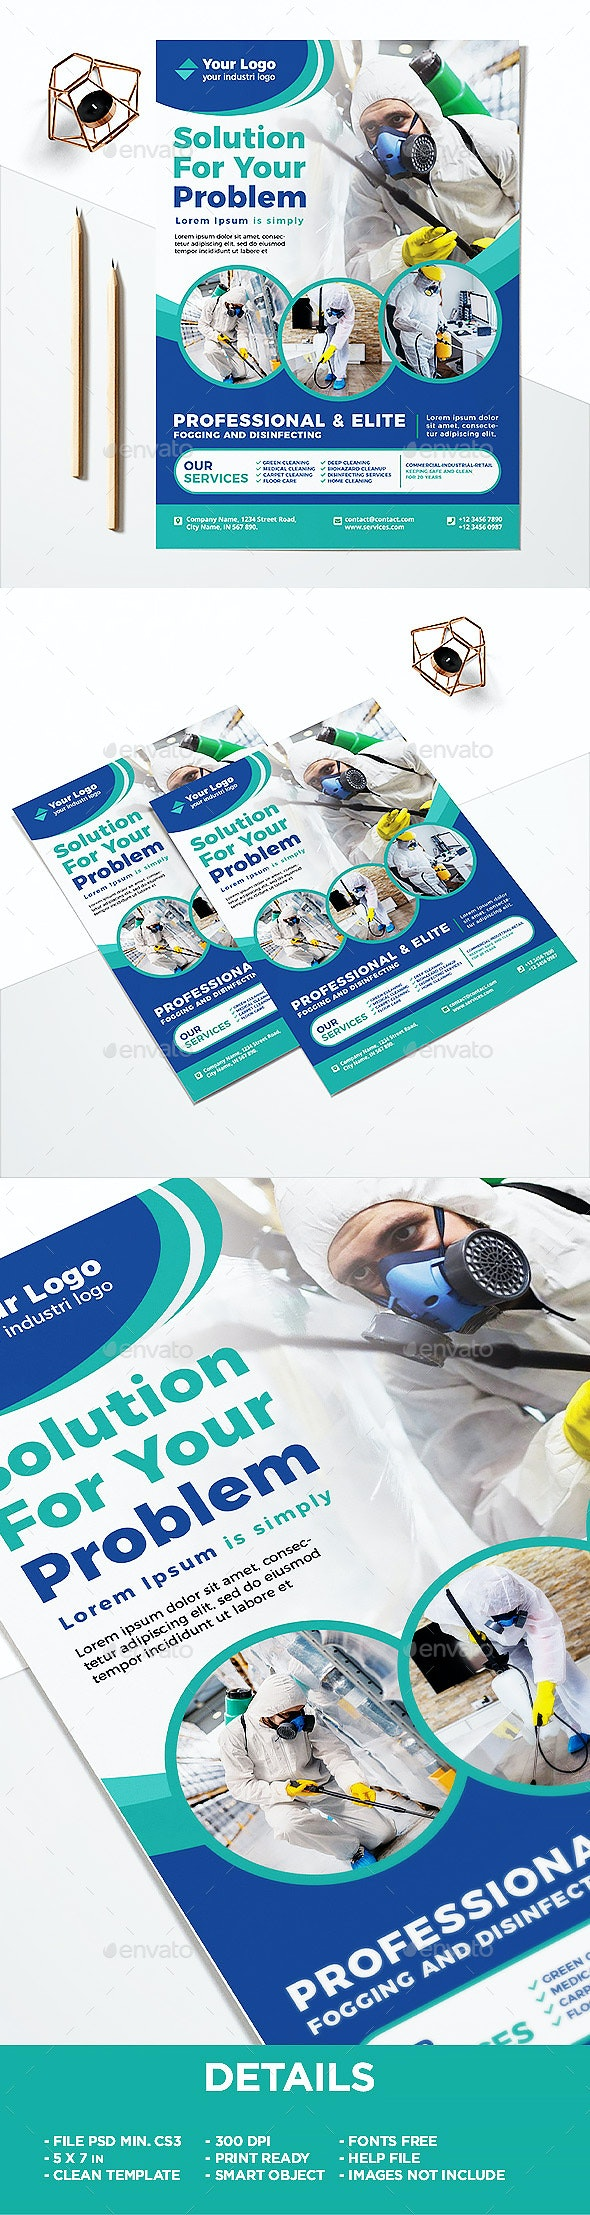 Professional Disinfecting and Cleaning Services Flyer - Corporate Flyers